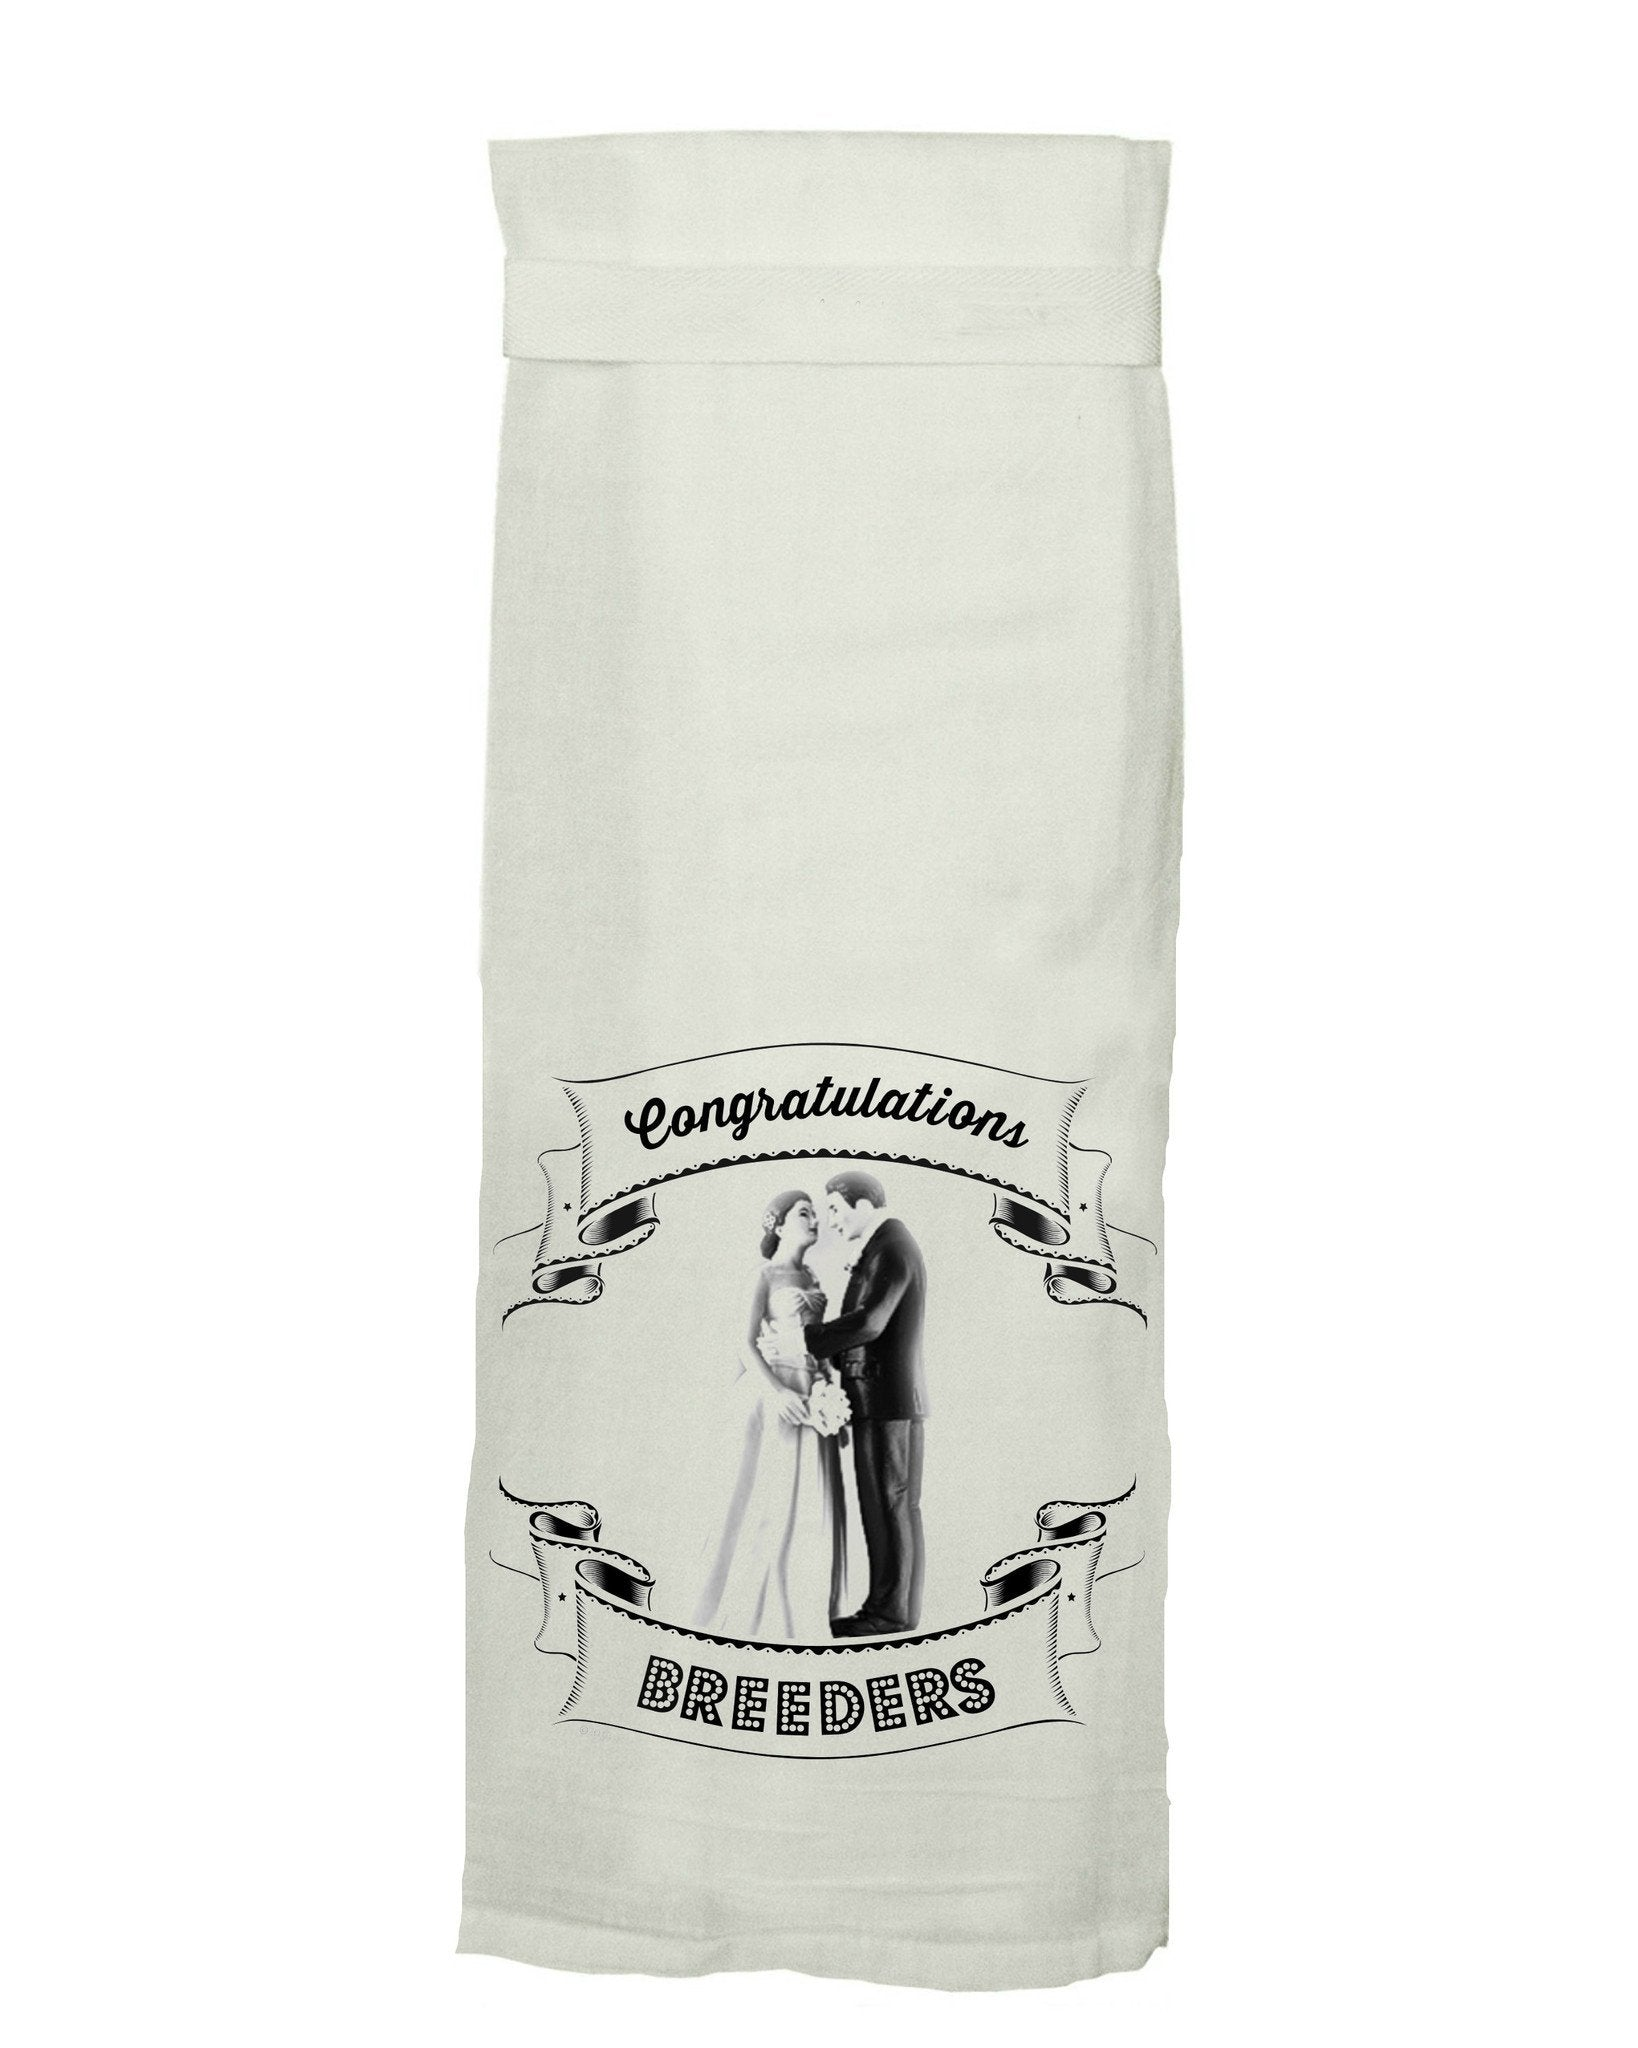 Buy Congratulations Breeders Flour Sack Tea Towel from Walking Pants Curiosities, the Most un-General Gift Store in Downtown Memphis, Tennessee!